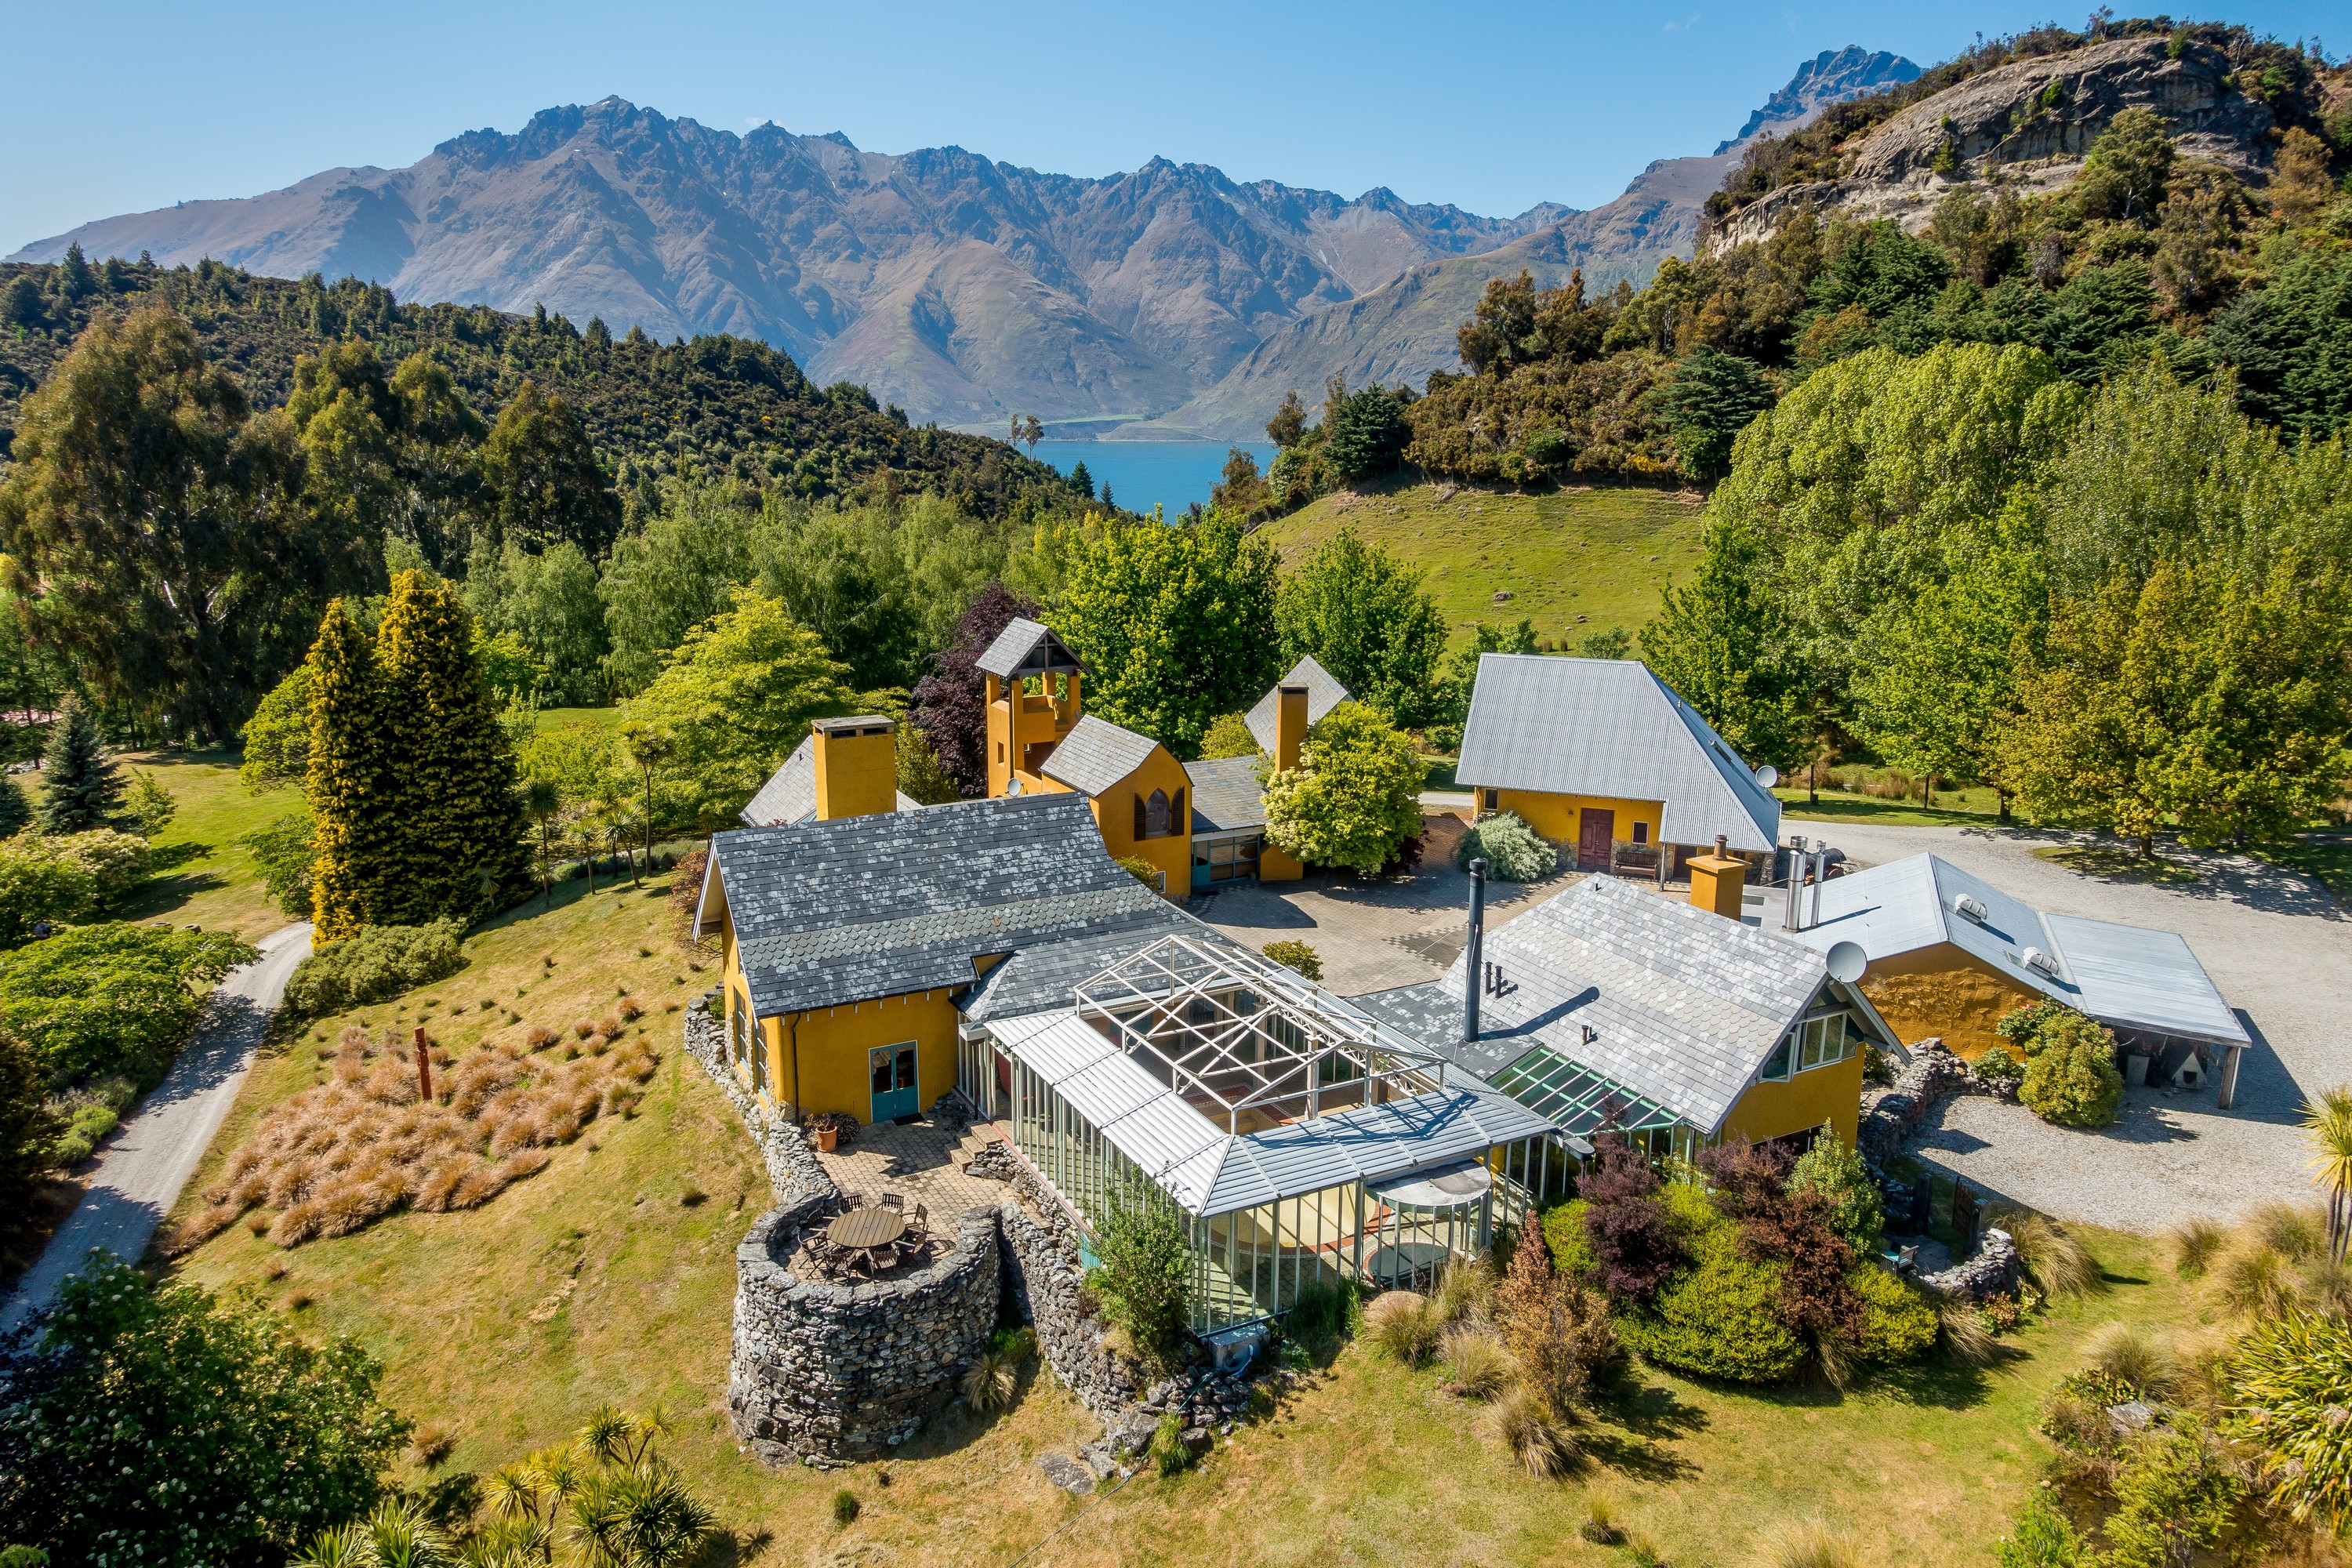 Multi-Family Home for Sale at Punatapu Punatapu 1113 Glenorchy-Queenstown Road Queenstown, Otago, 9348 New Zealand